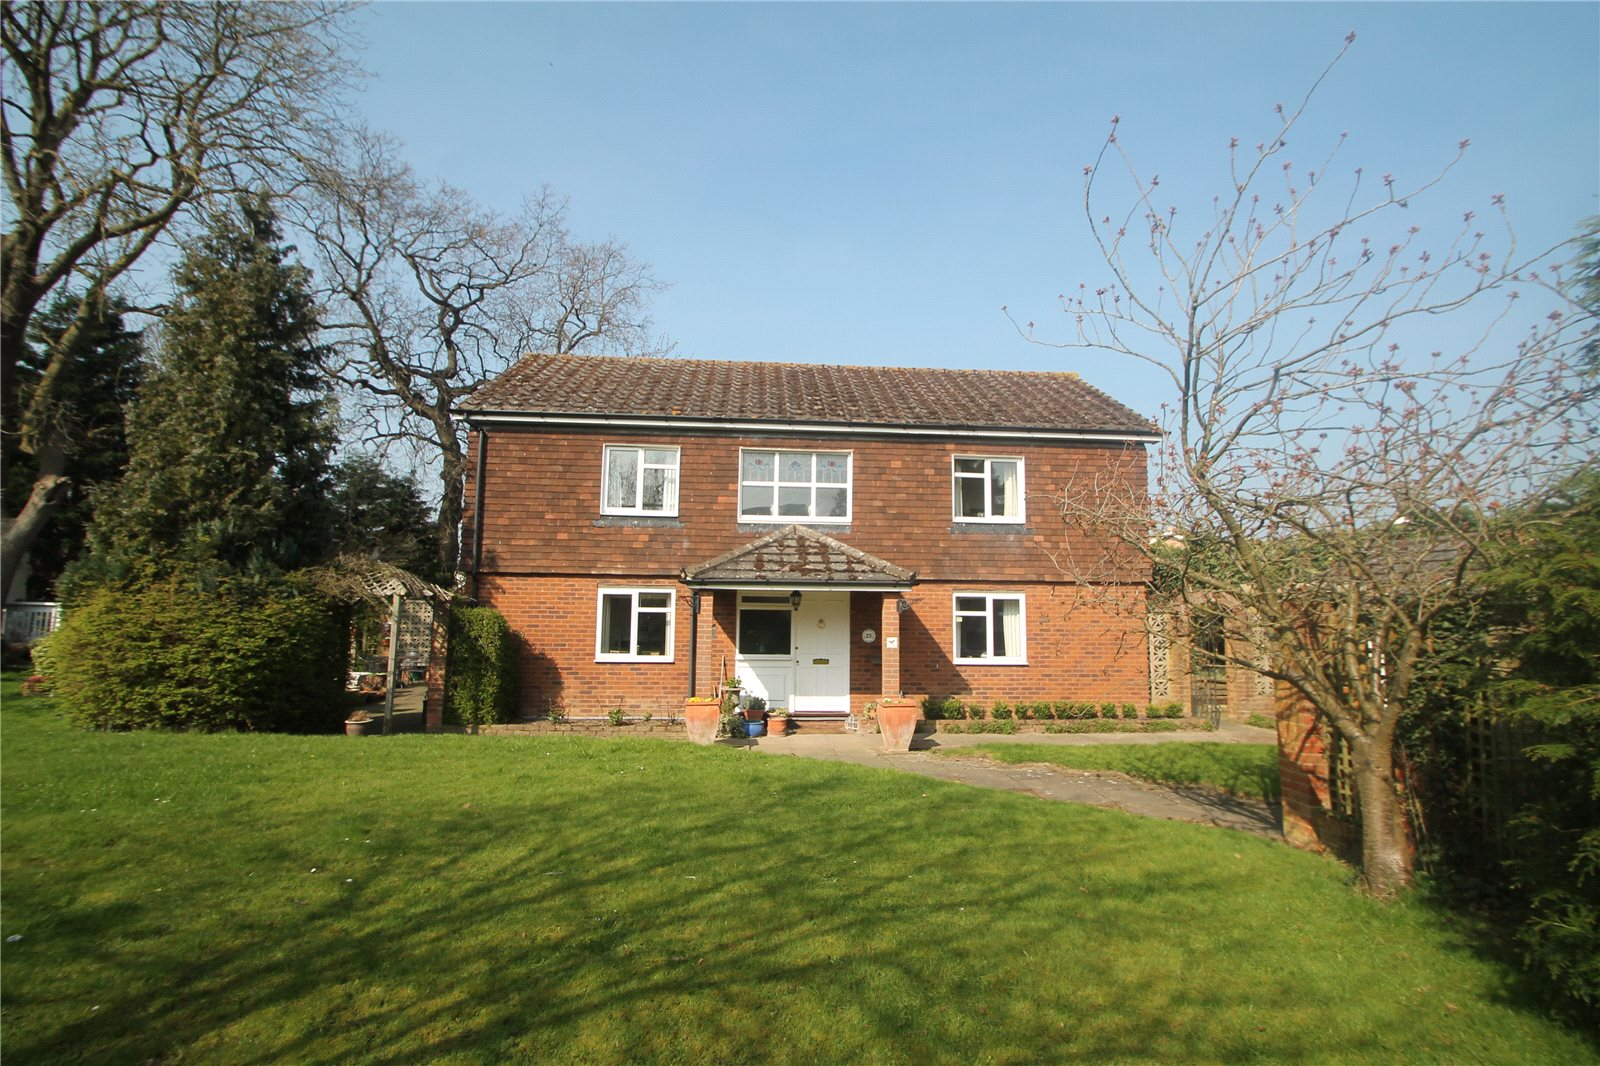 4 Bedrooms Detached House for sale in Tulip Tree Close Tonbridge Kent TN9